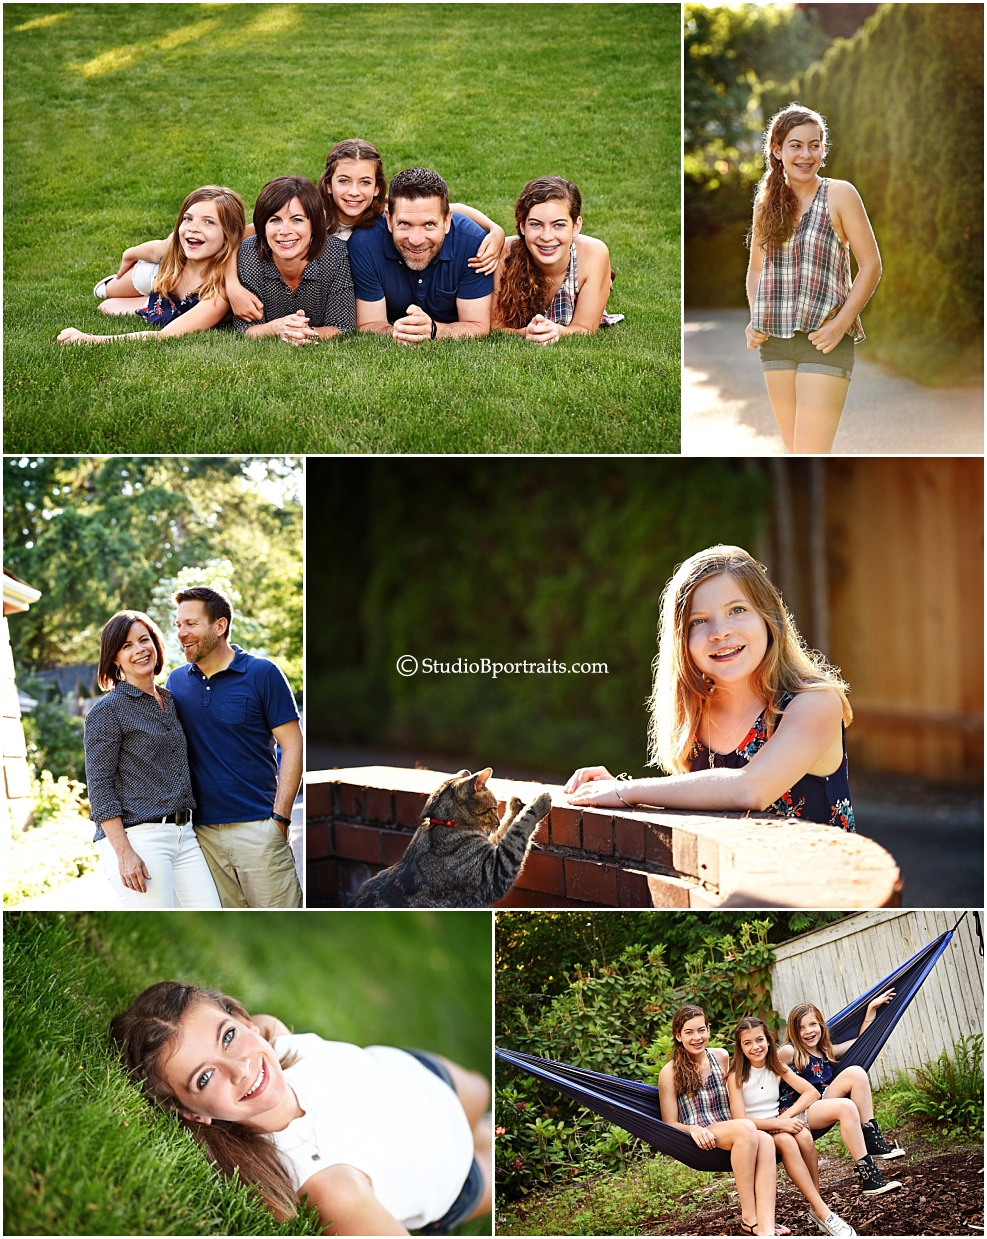 Plateau LIving Magazine story featuring Riskin Family photographed by Studio B Portraits Brooke Clark in Sammamish WA